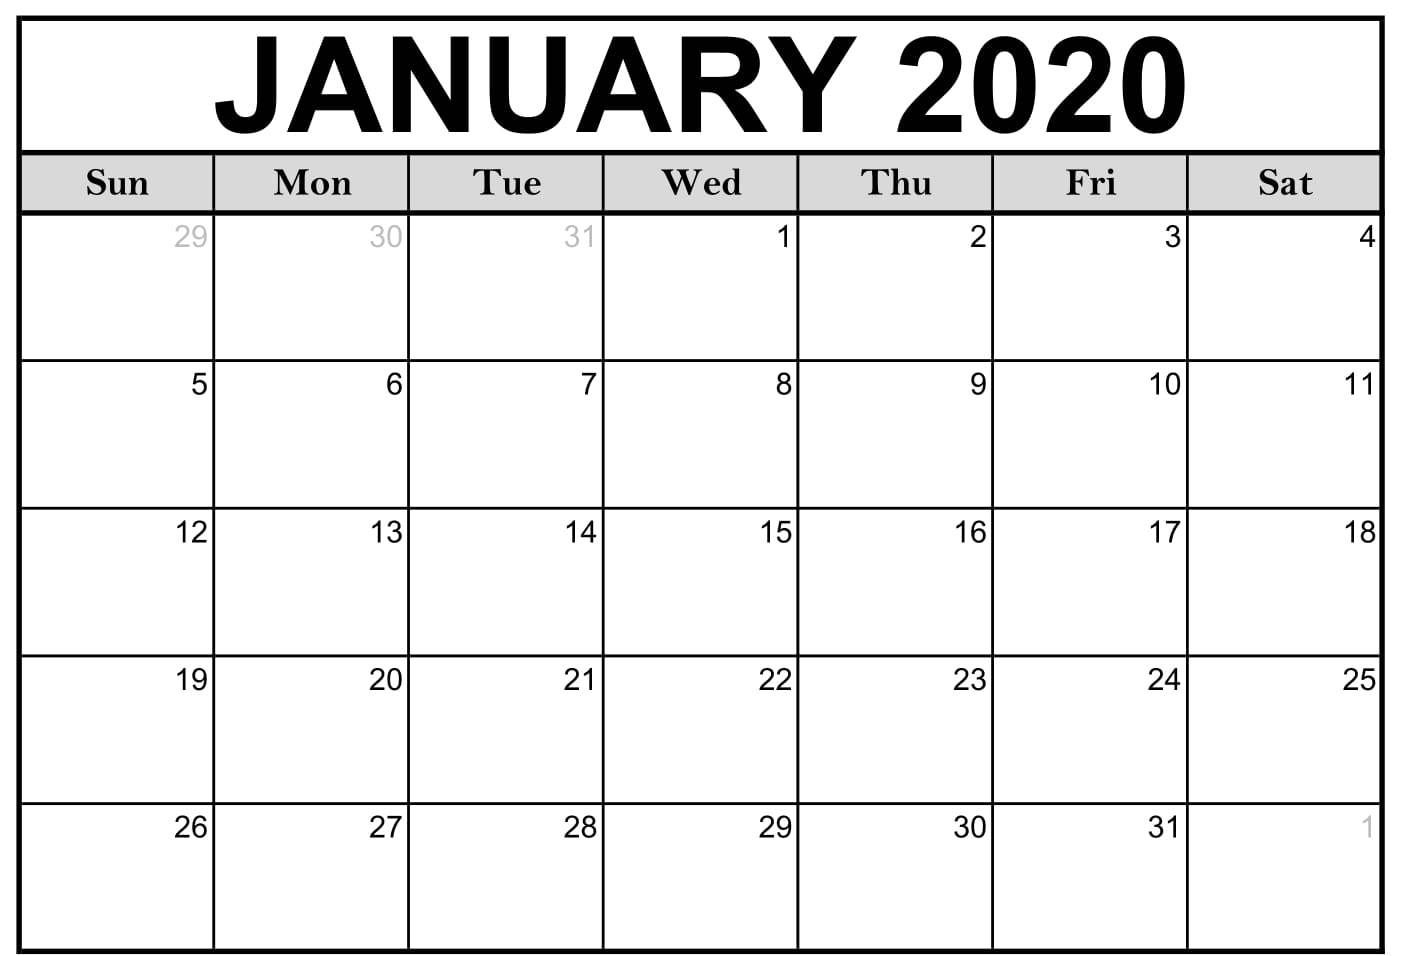 Blank January 2020 Calendar Template #2020Calendar in Calander January 2020